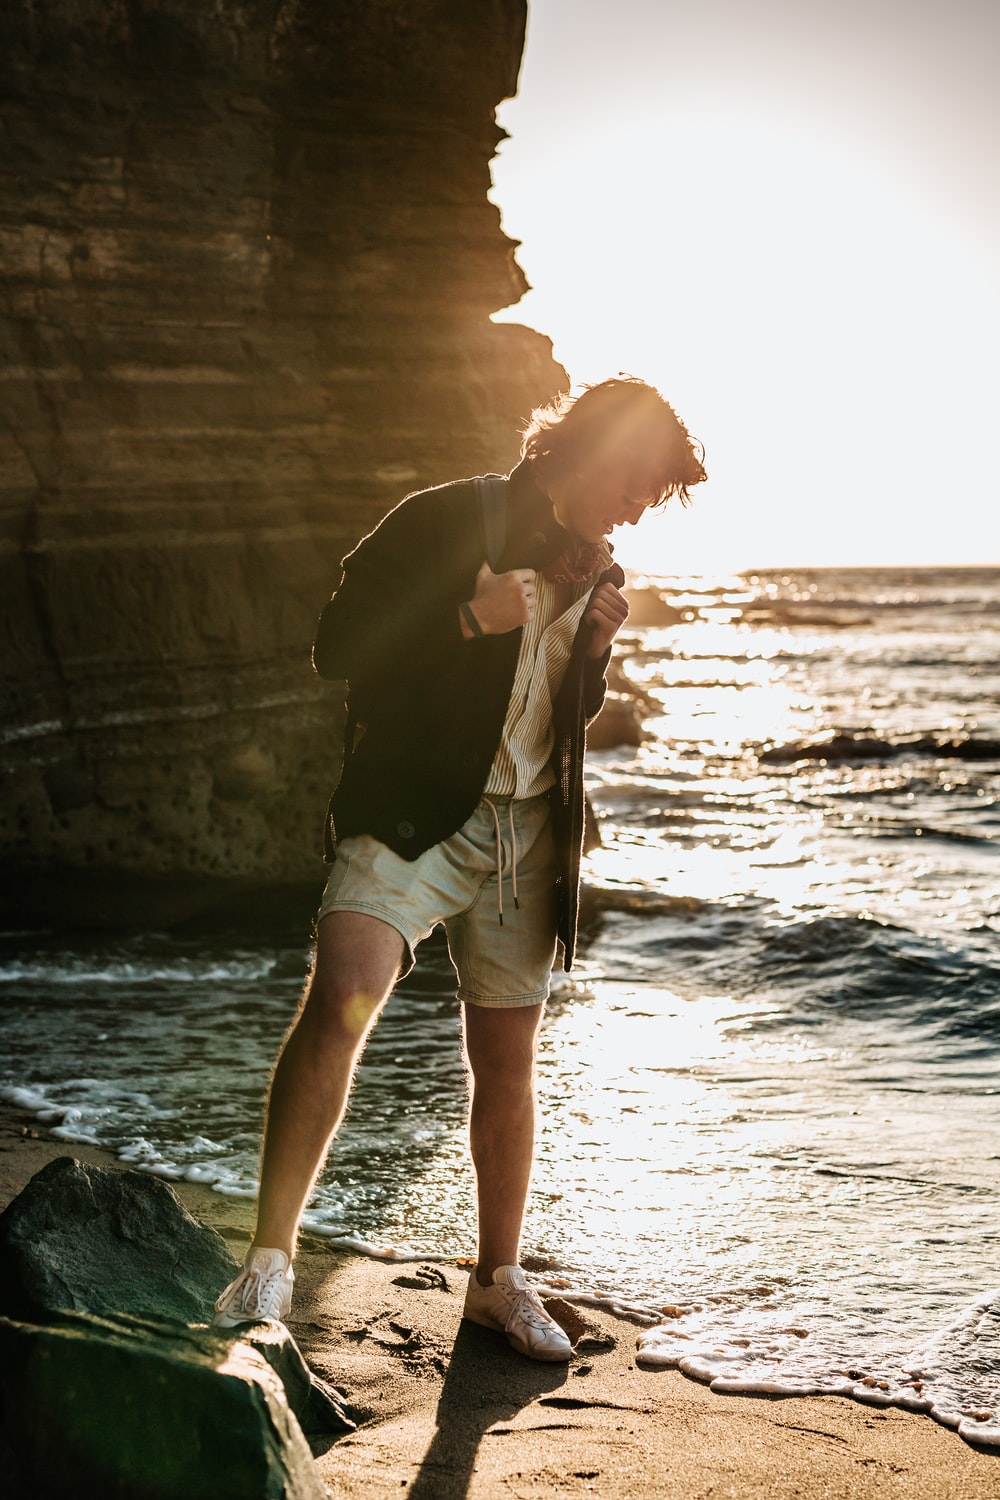 man standing on seashore near rock formation during daytime